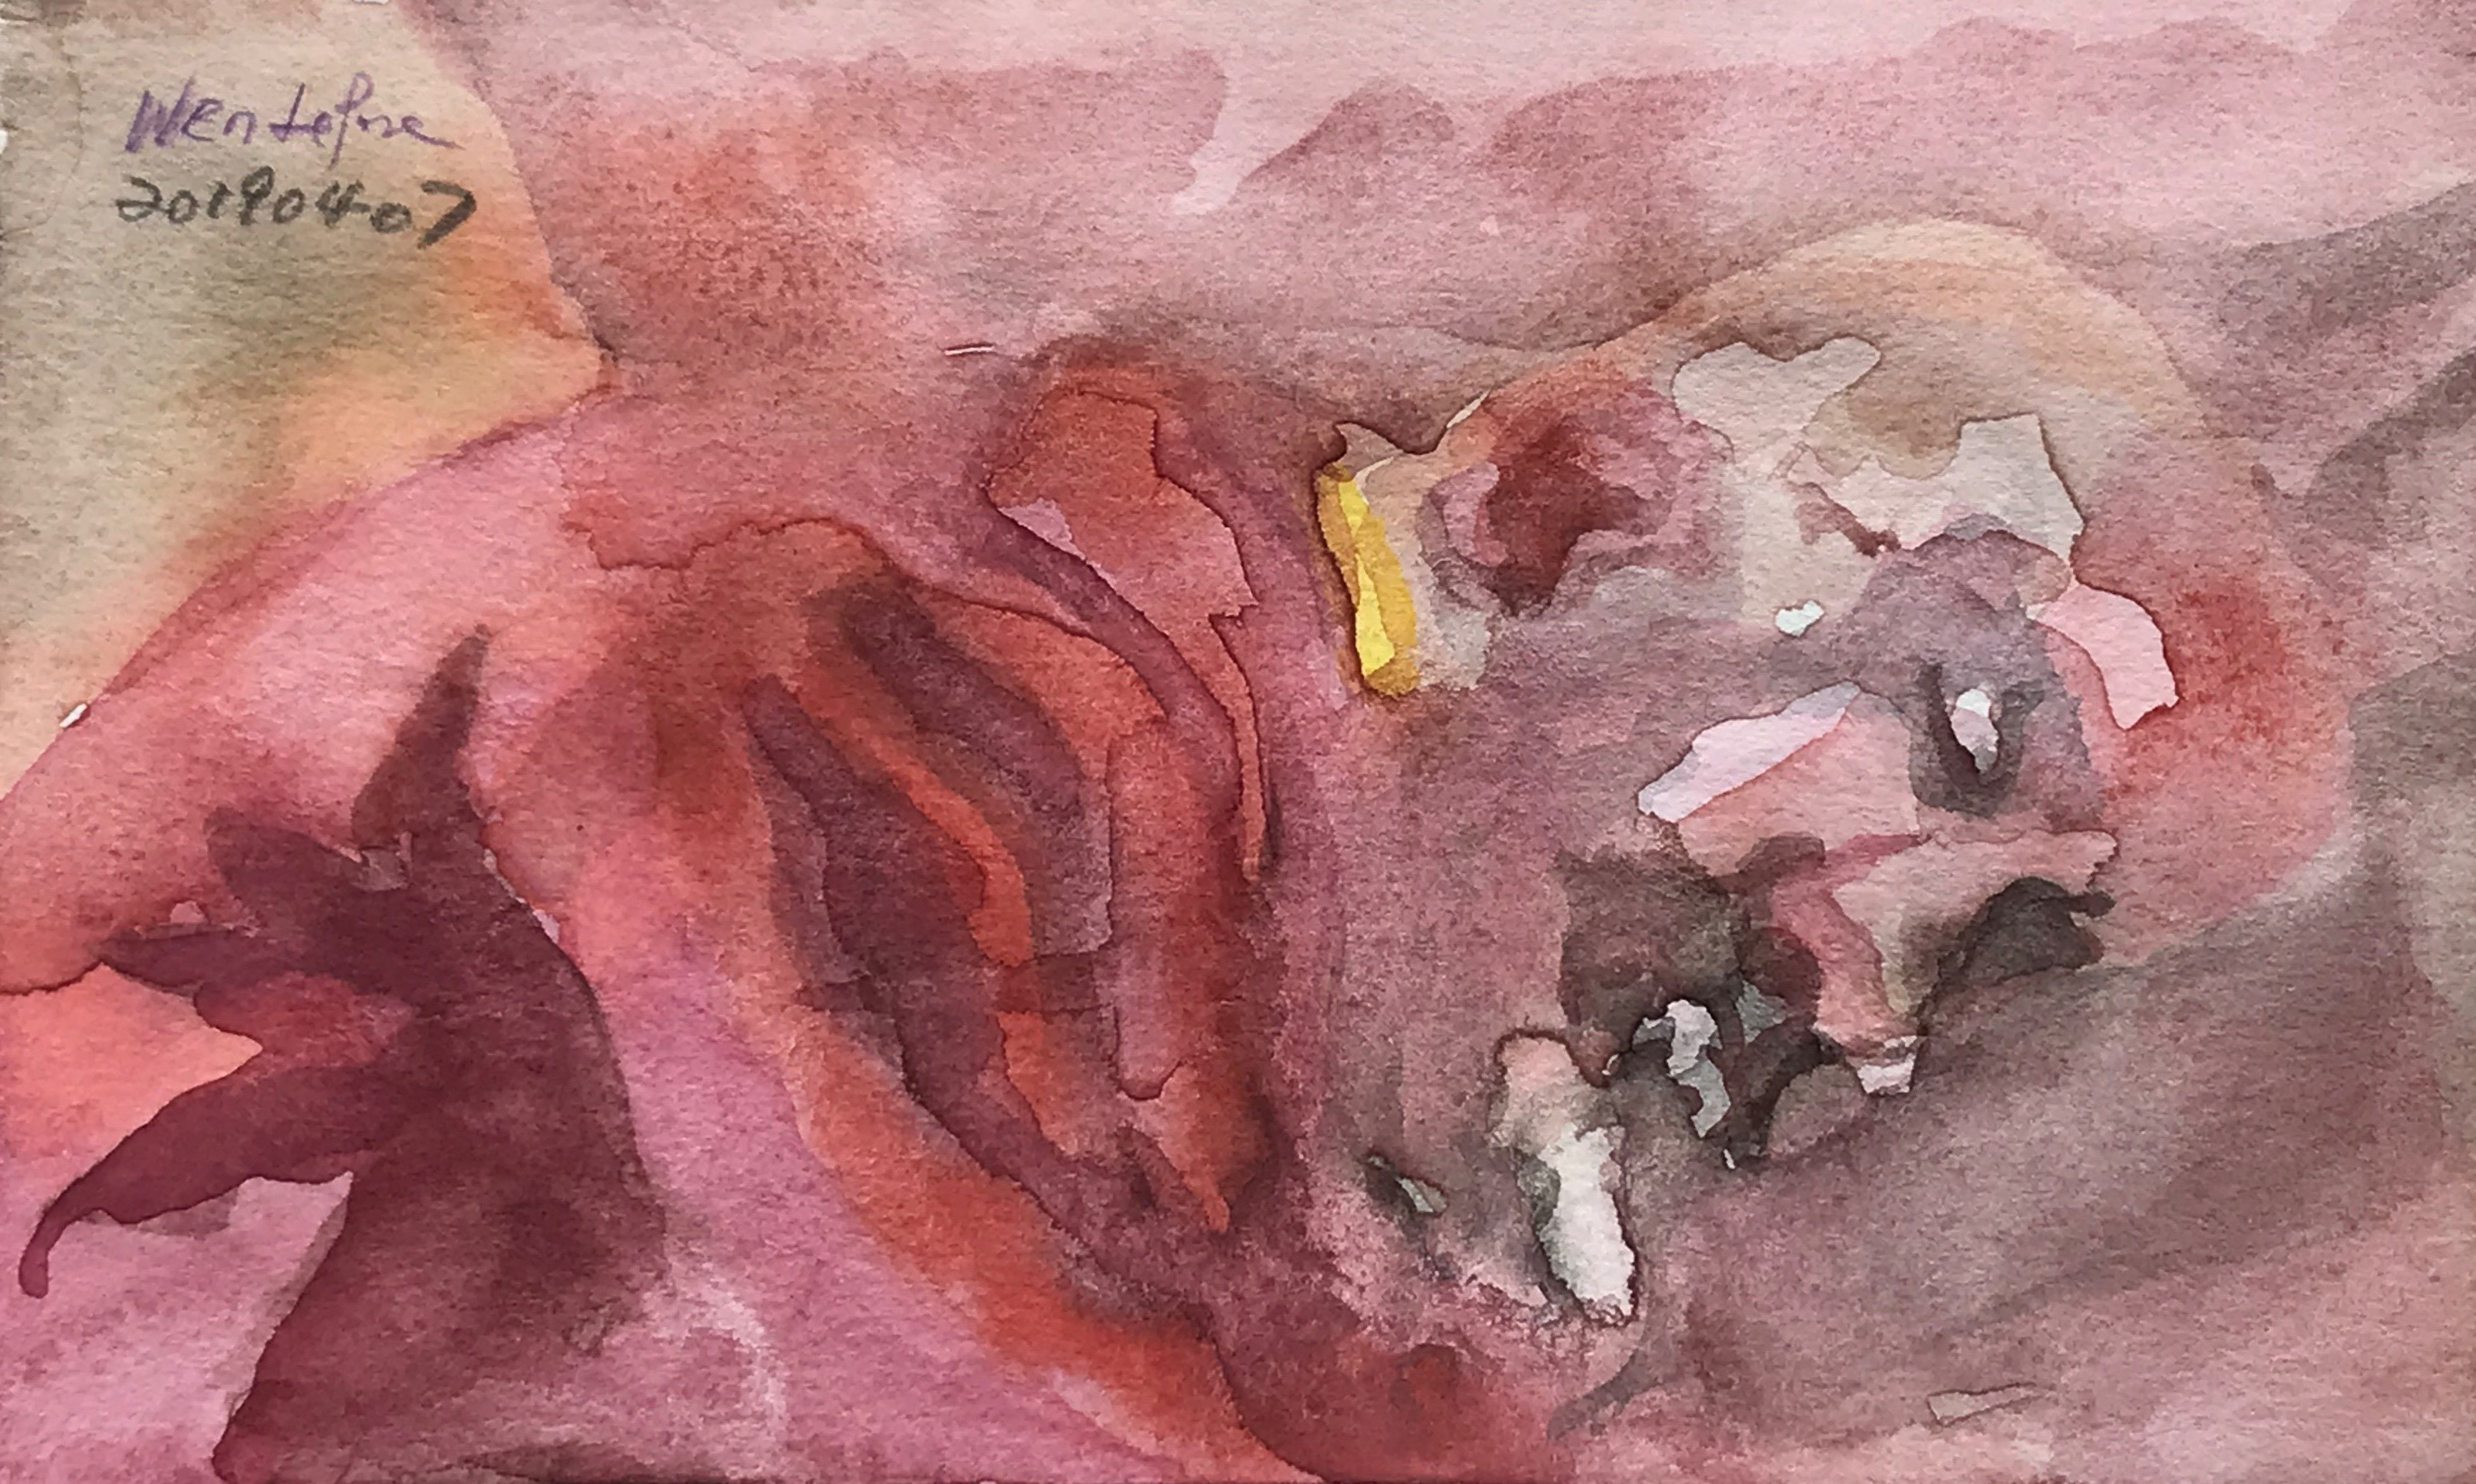 https://0901.nccdn.net/4_2/000/000/01e/20c/wen_lepore_watercolor201903-copy-3917x2348.jpg